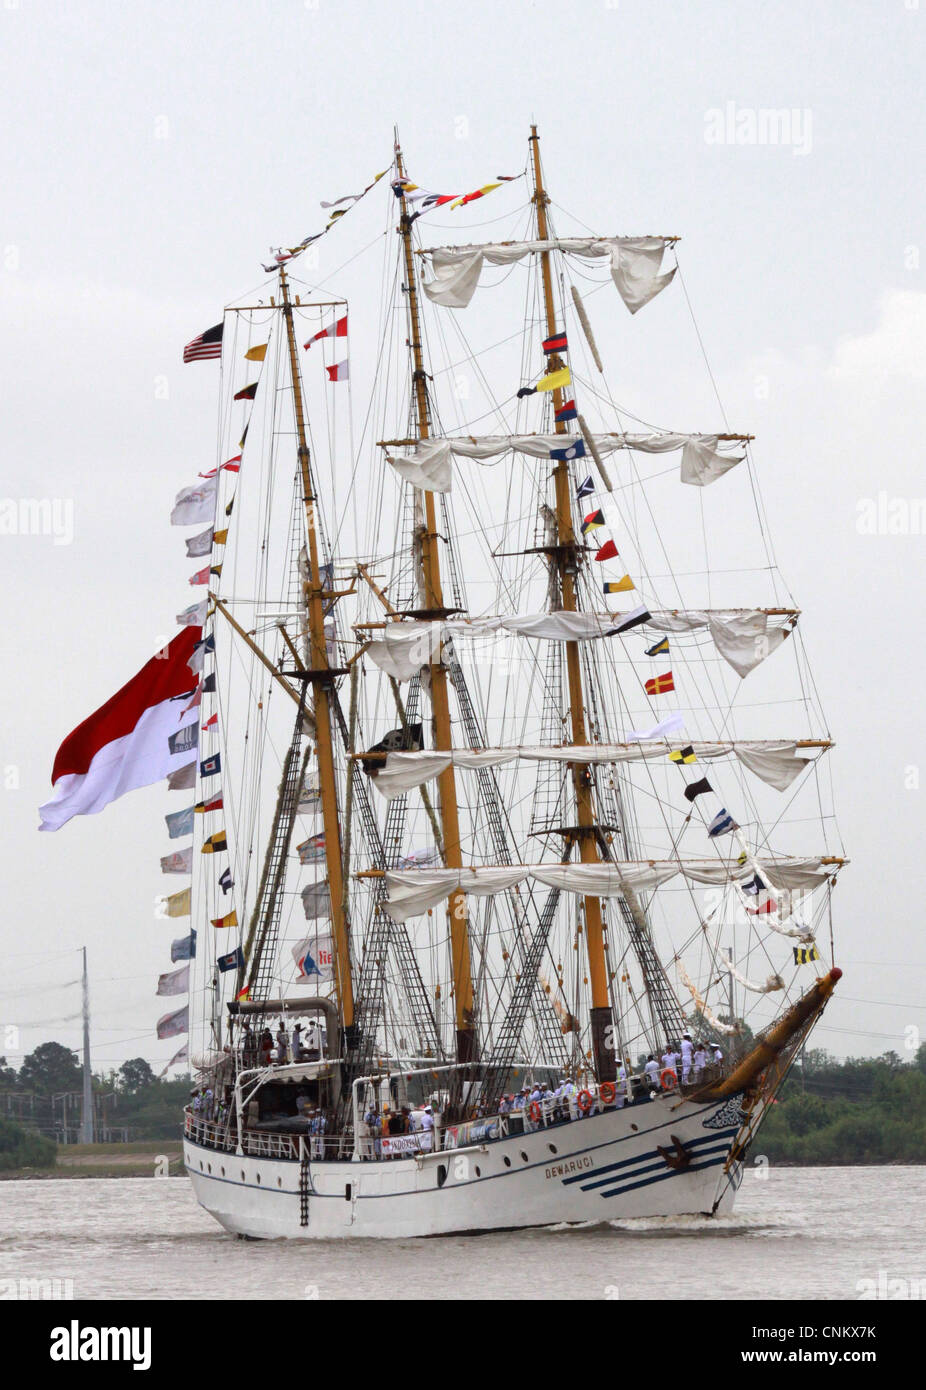 The Indonesia tall ship Dewaruci arrives in New Orleans as part of The War of 1812 Bicentennial Commemoration. The - Stock Image